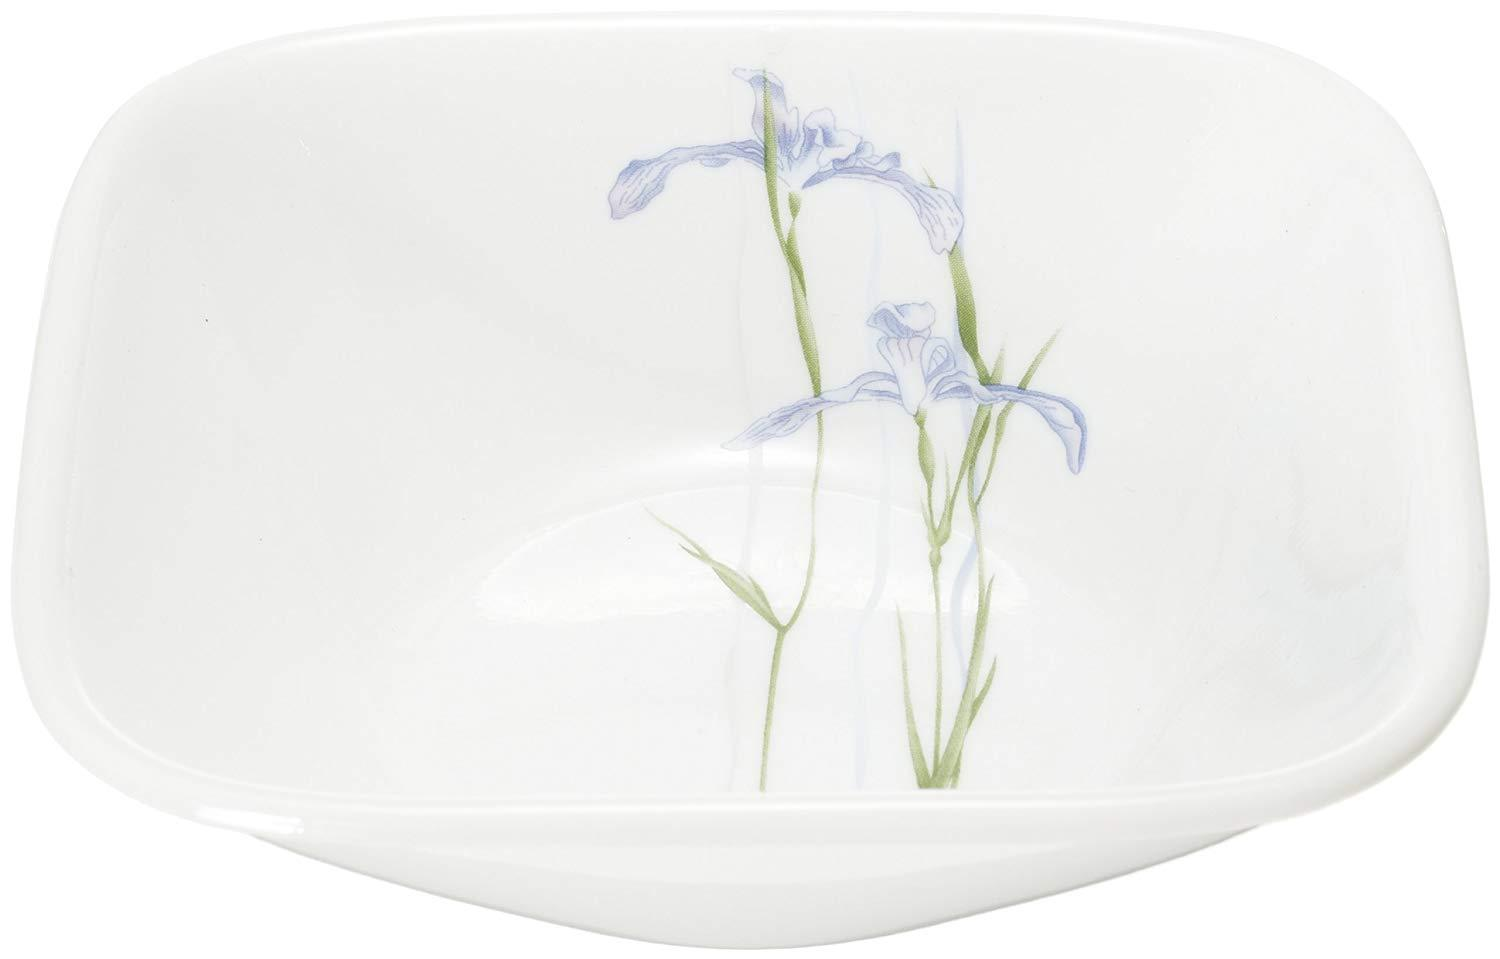 CORELLE SHADOW IRIS SQ VEG BOWL  - 6PCS